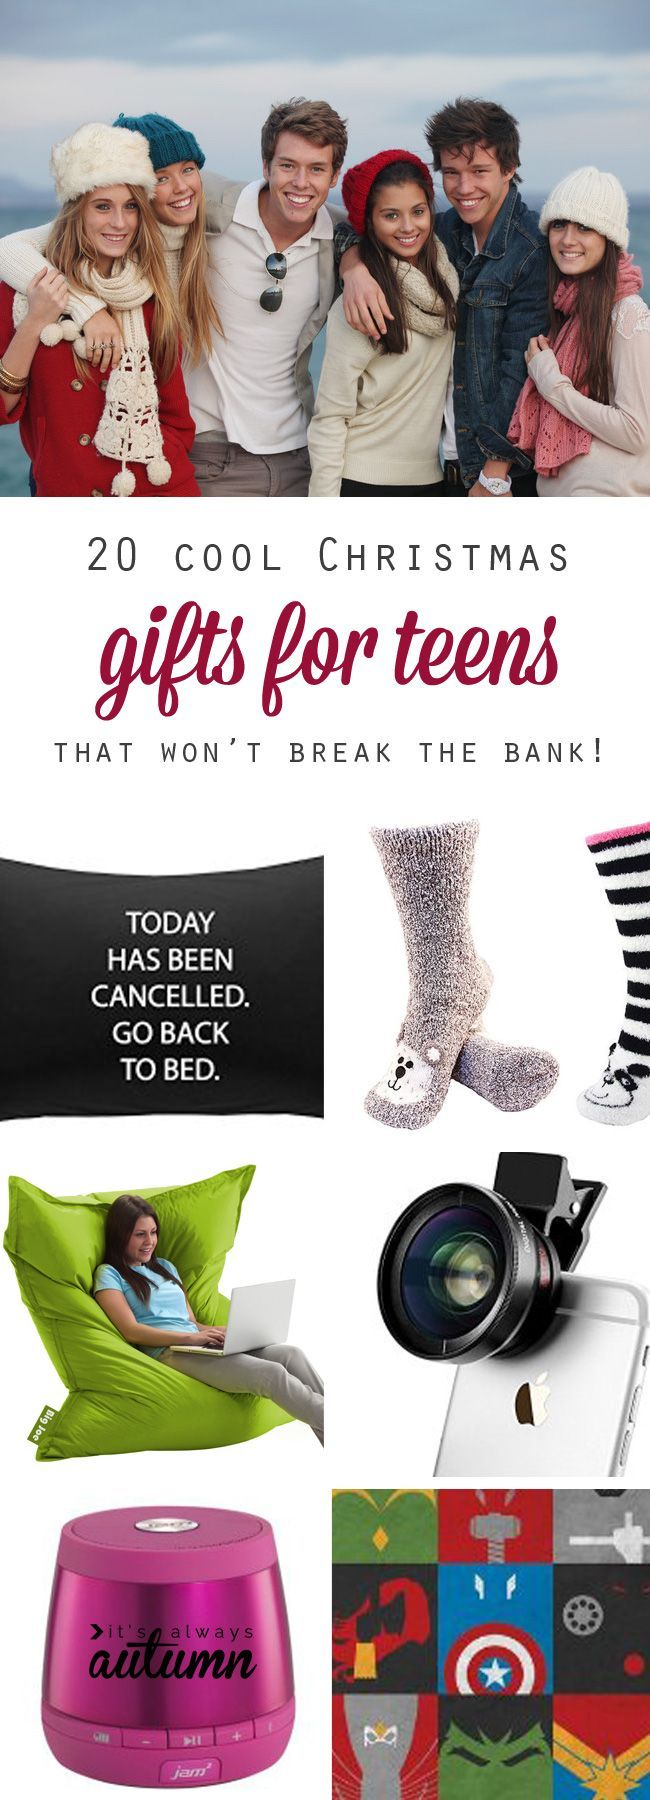 cool christmas gift ideas for teens